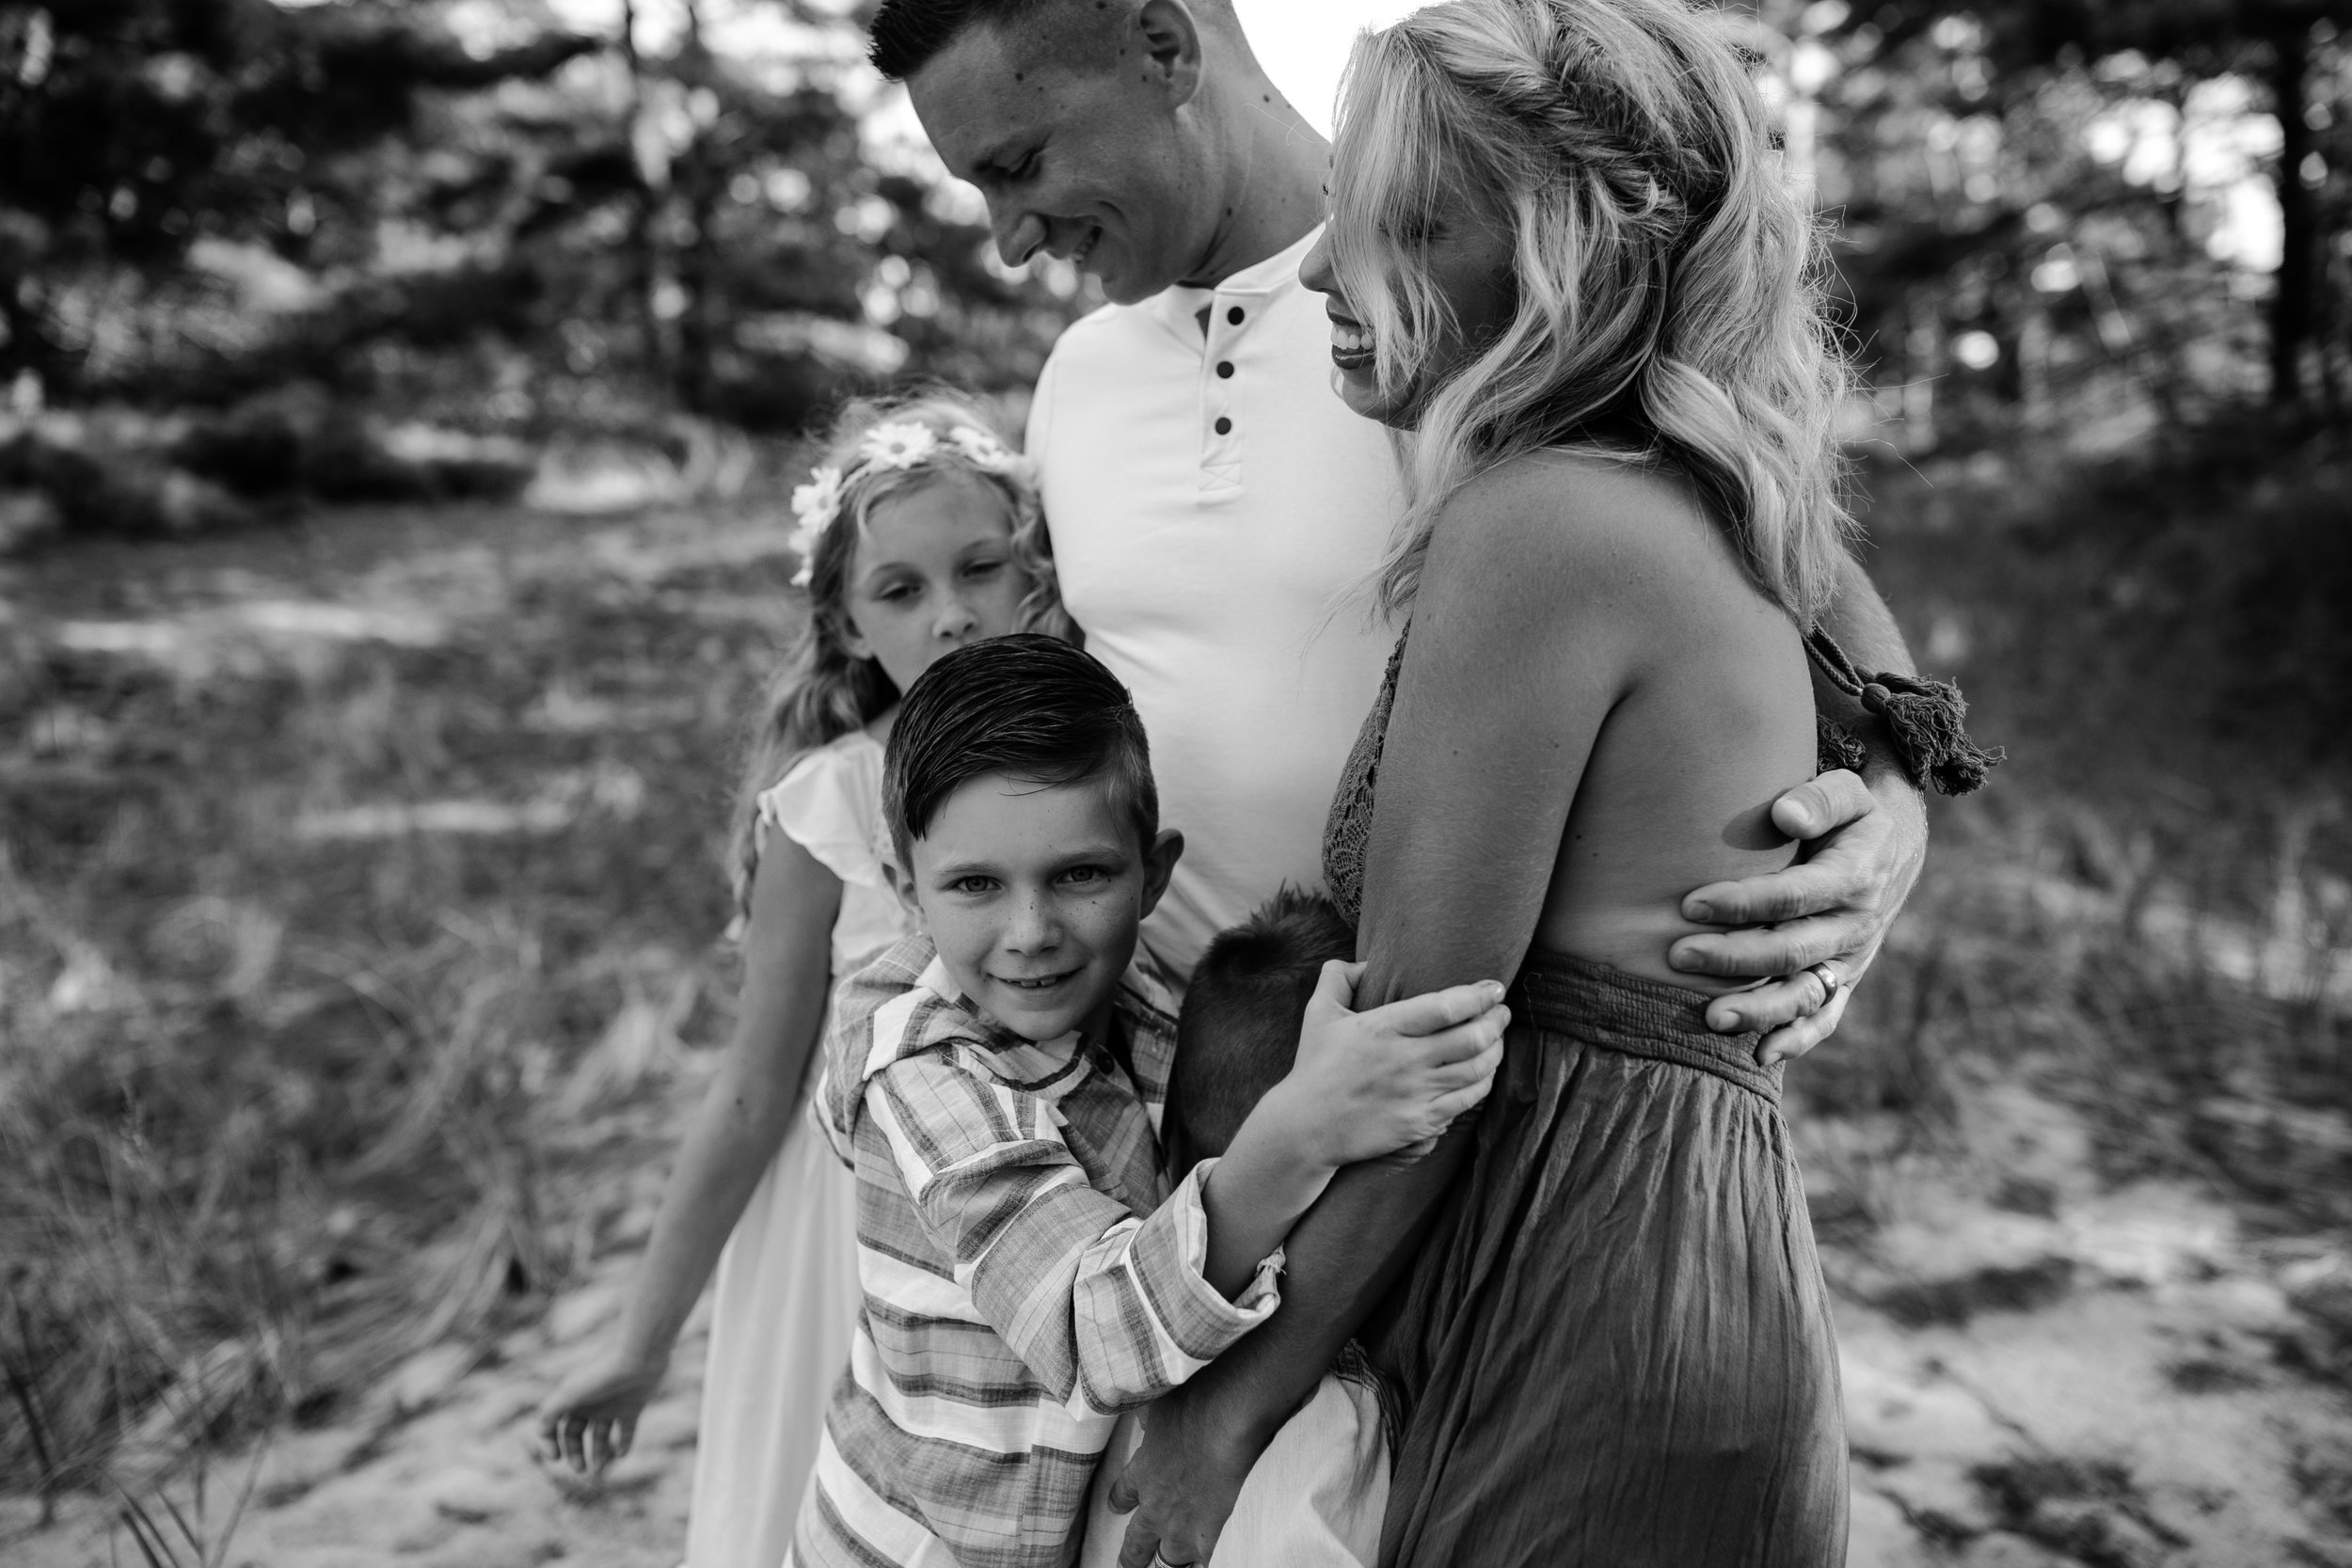 michigan-storytelling-photographer-ludington-mi-state-park-andrews-family-sunset-session-37.jpg